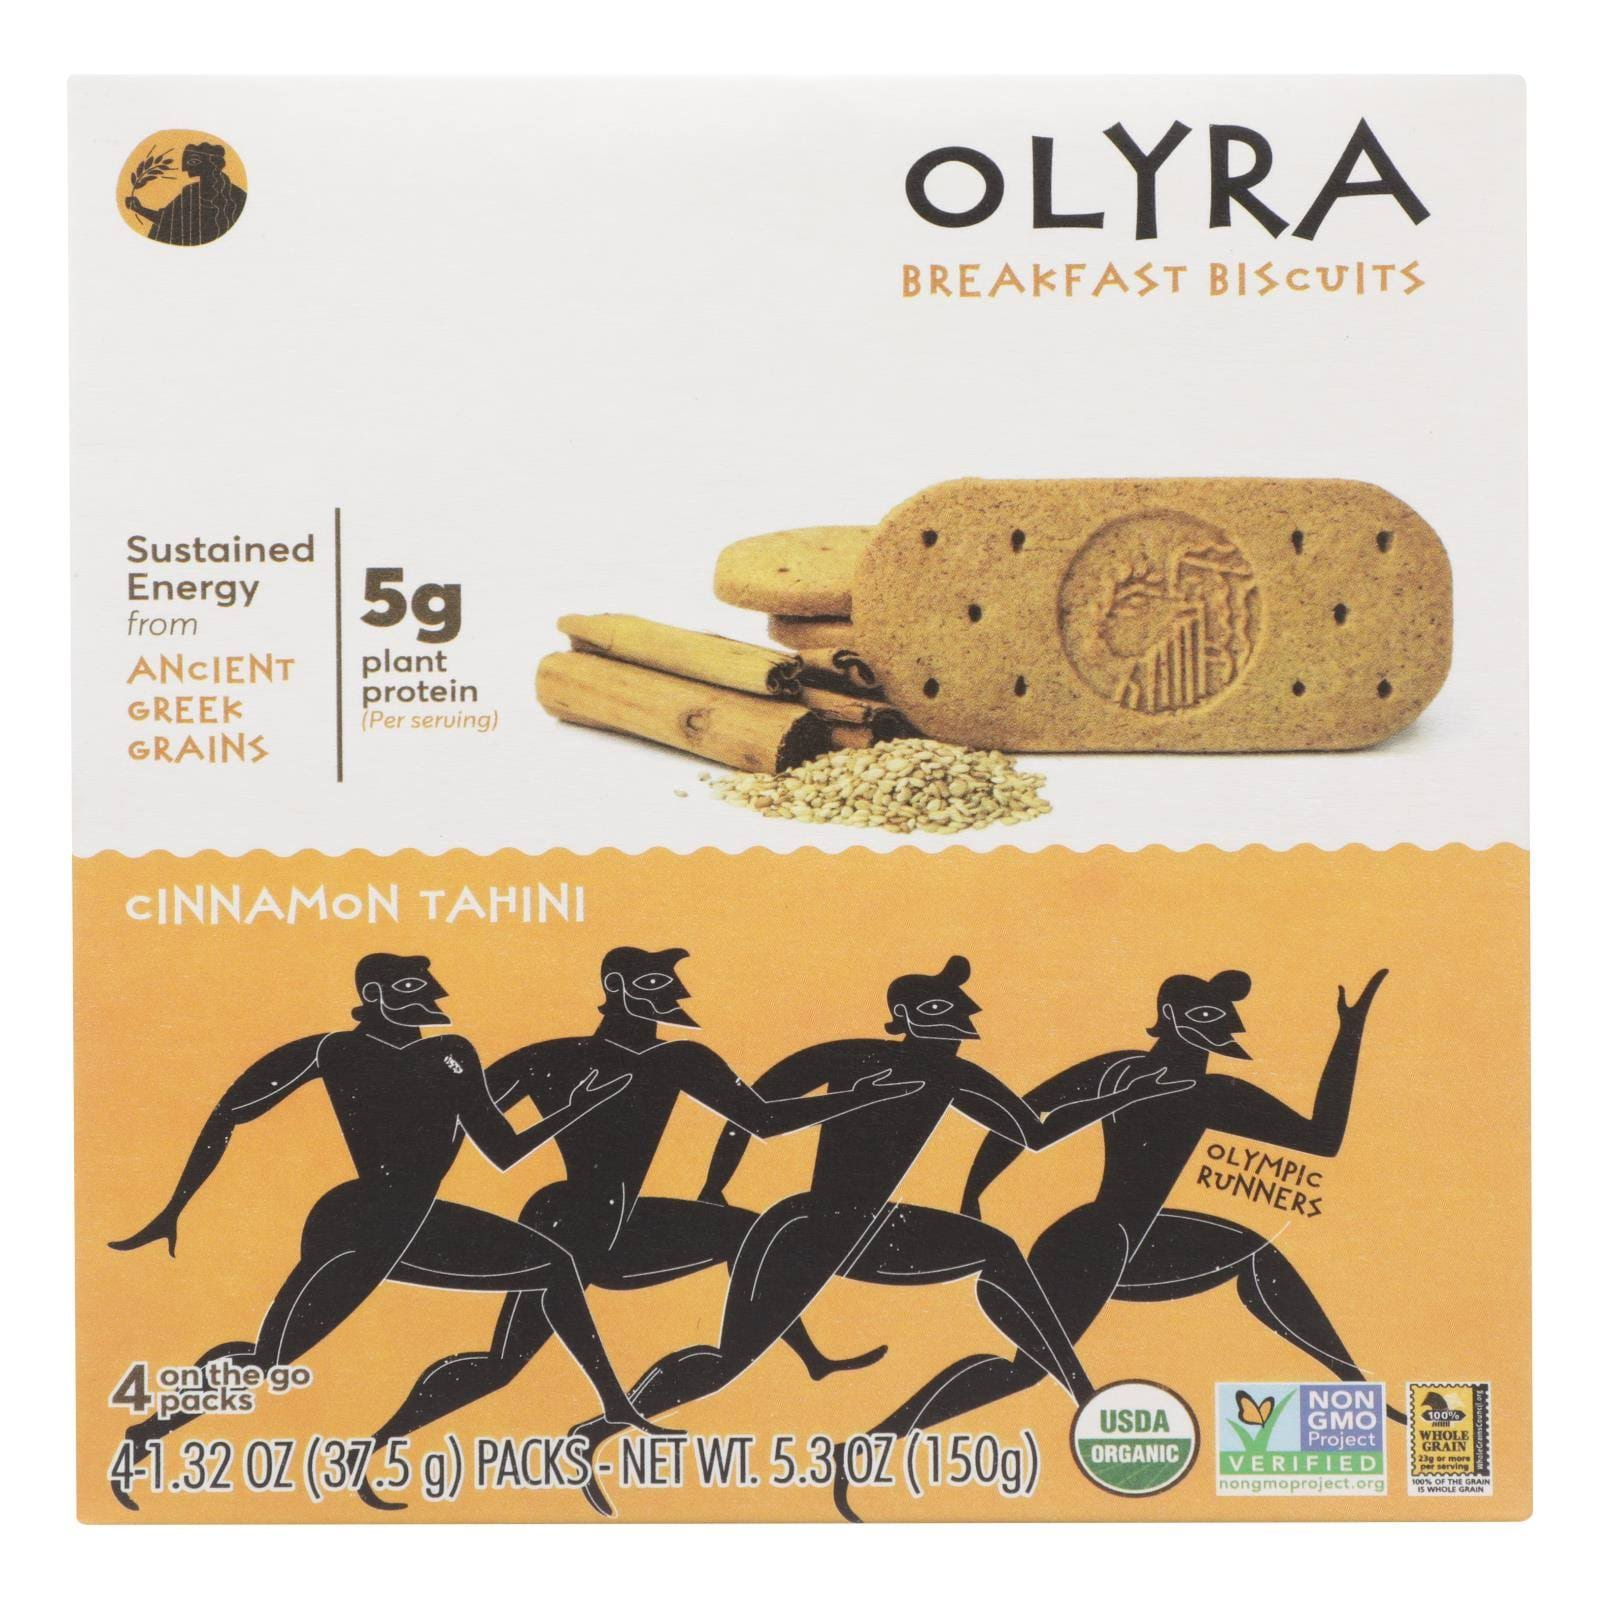 Olyra Breakfast Biscuit - Cinnamon Tahini, 5.3oz